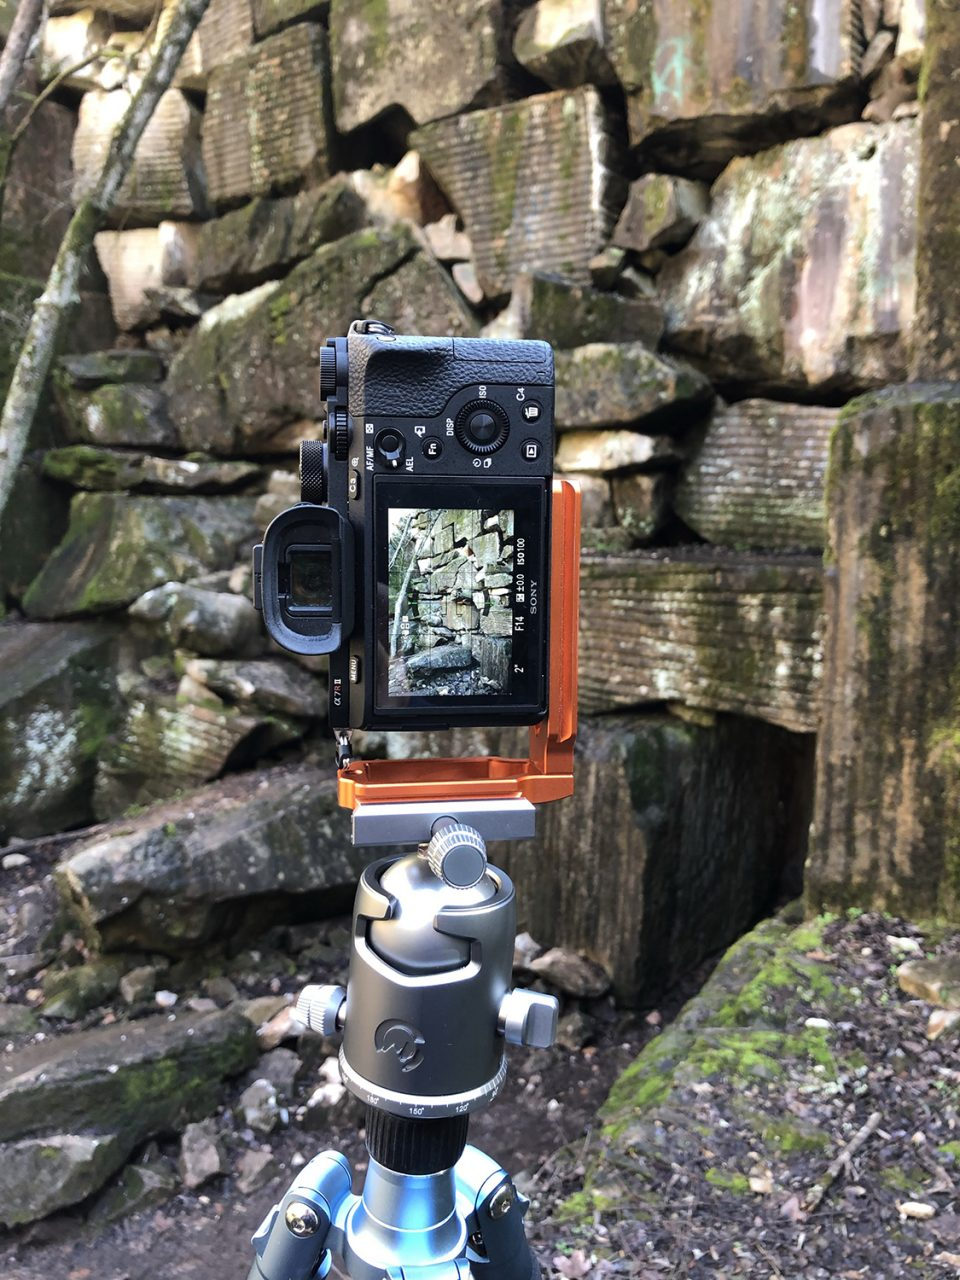 In the bottom of the quarry: camera settings visible on the LED screen.